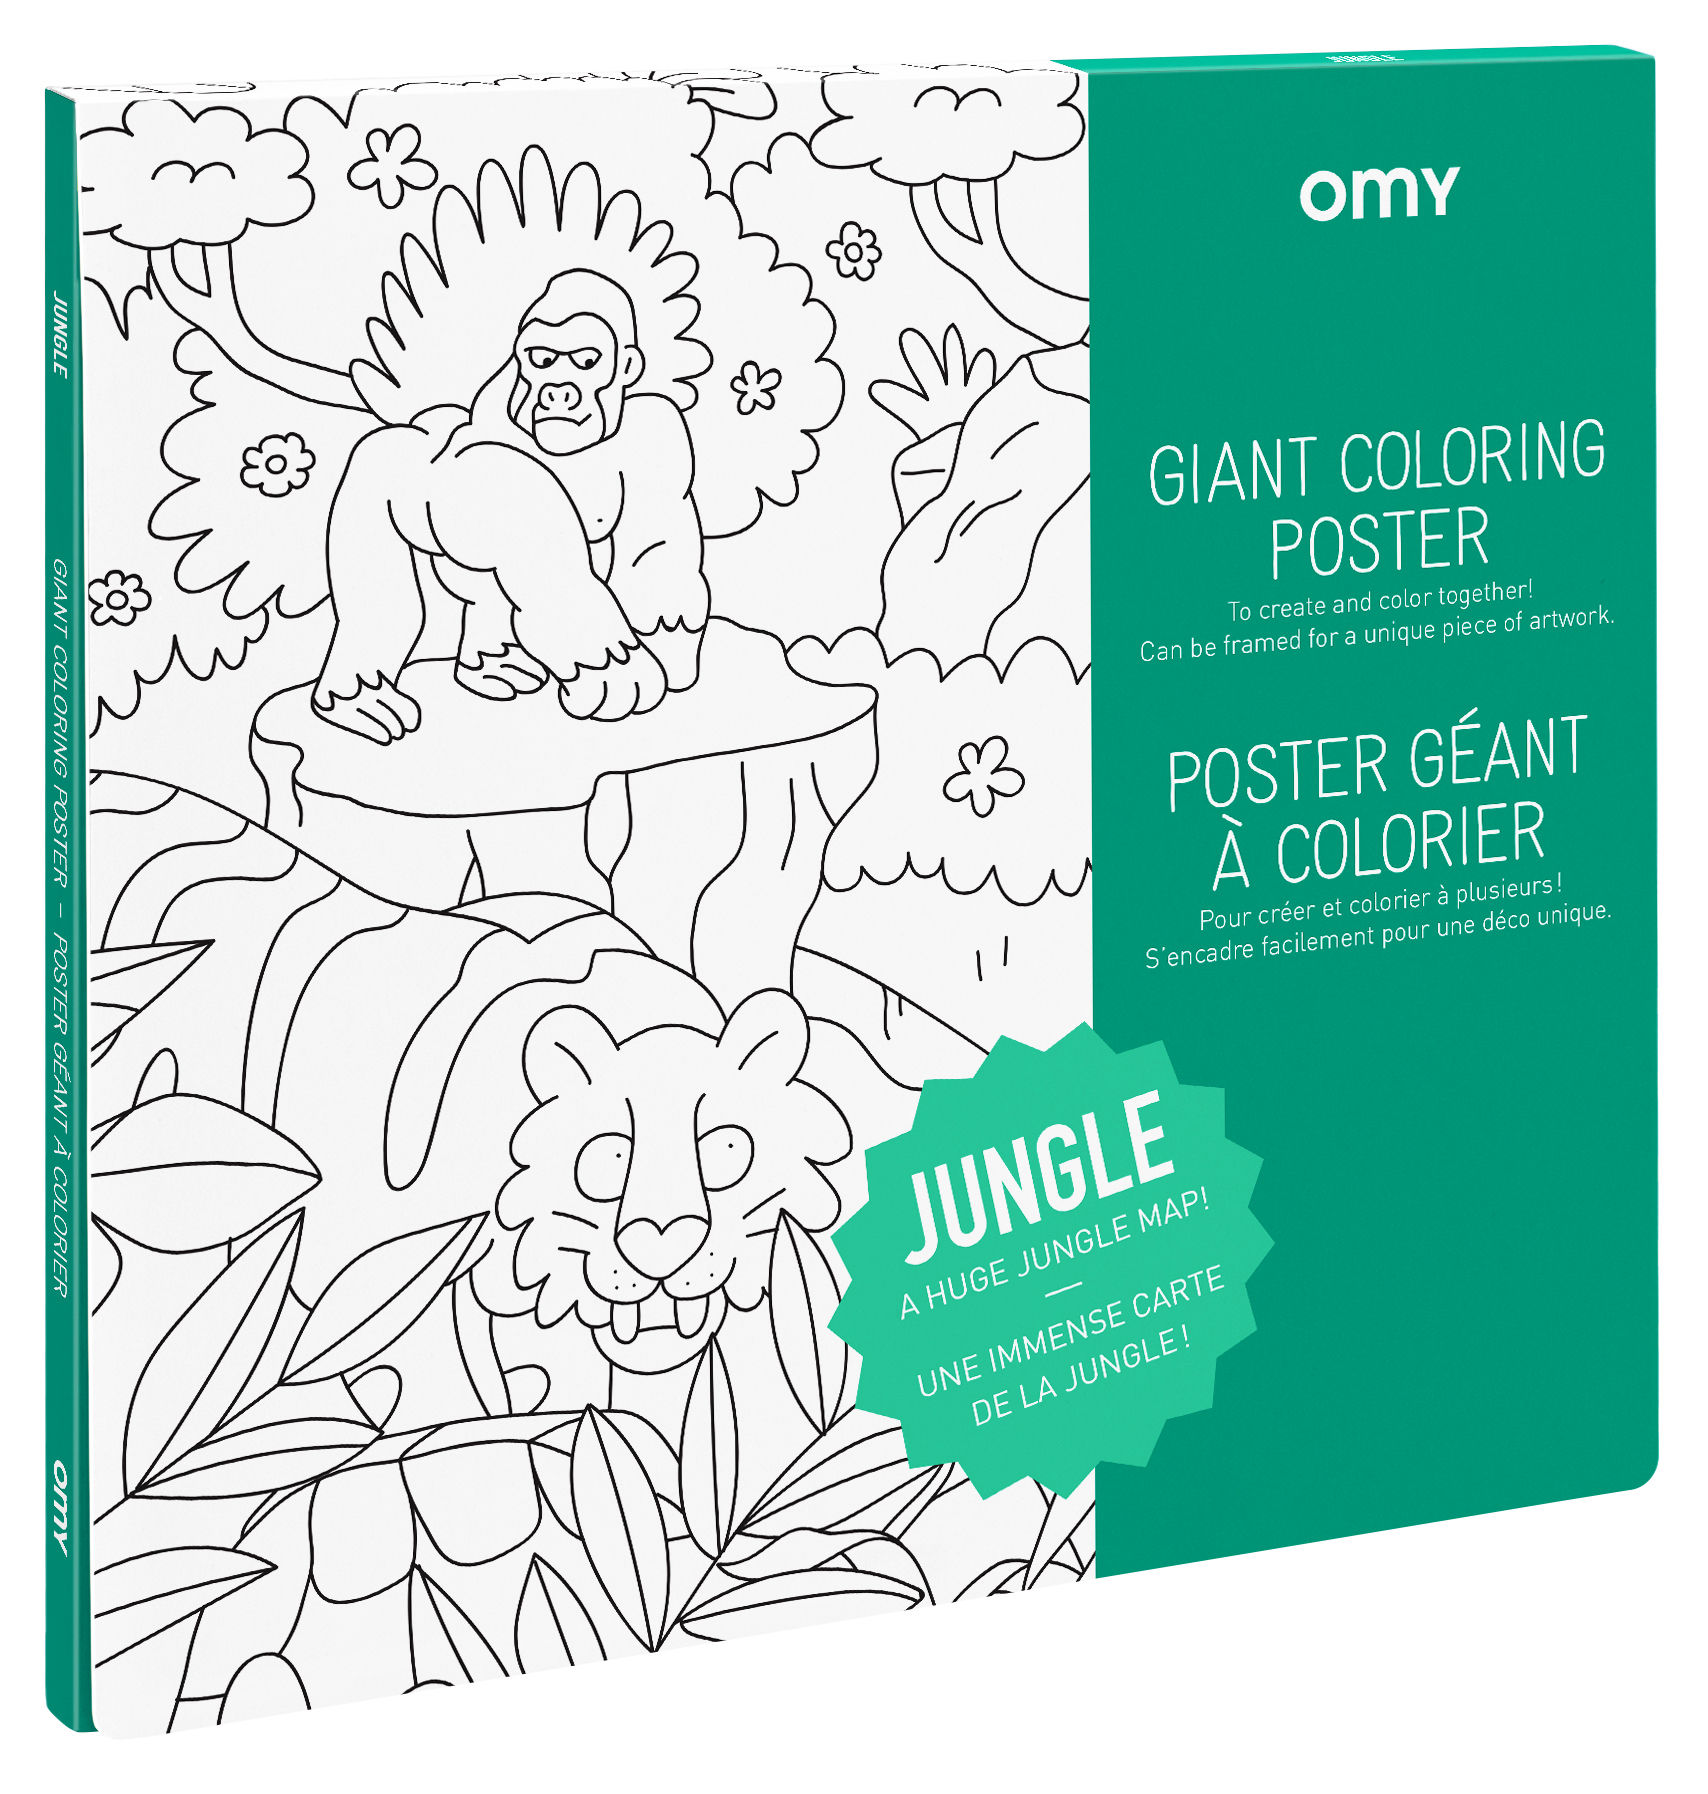 Decoration - Children's Home Accessories - Jungle Colouring poster - / 100 x 70 cm by OMY Design & Play - Jungle - Papier recyclé